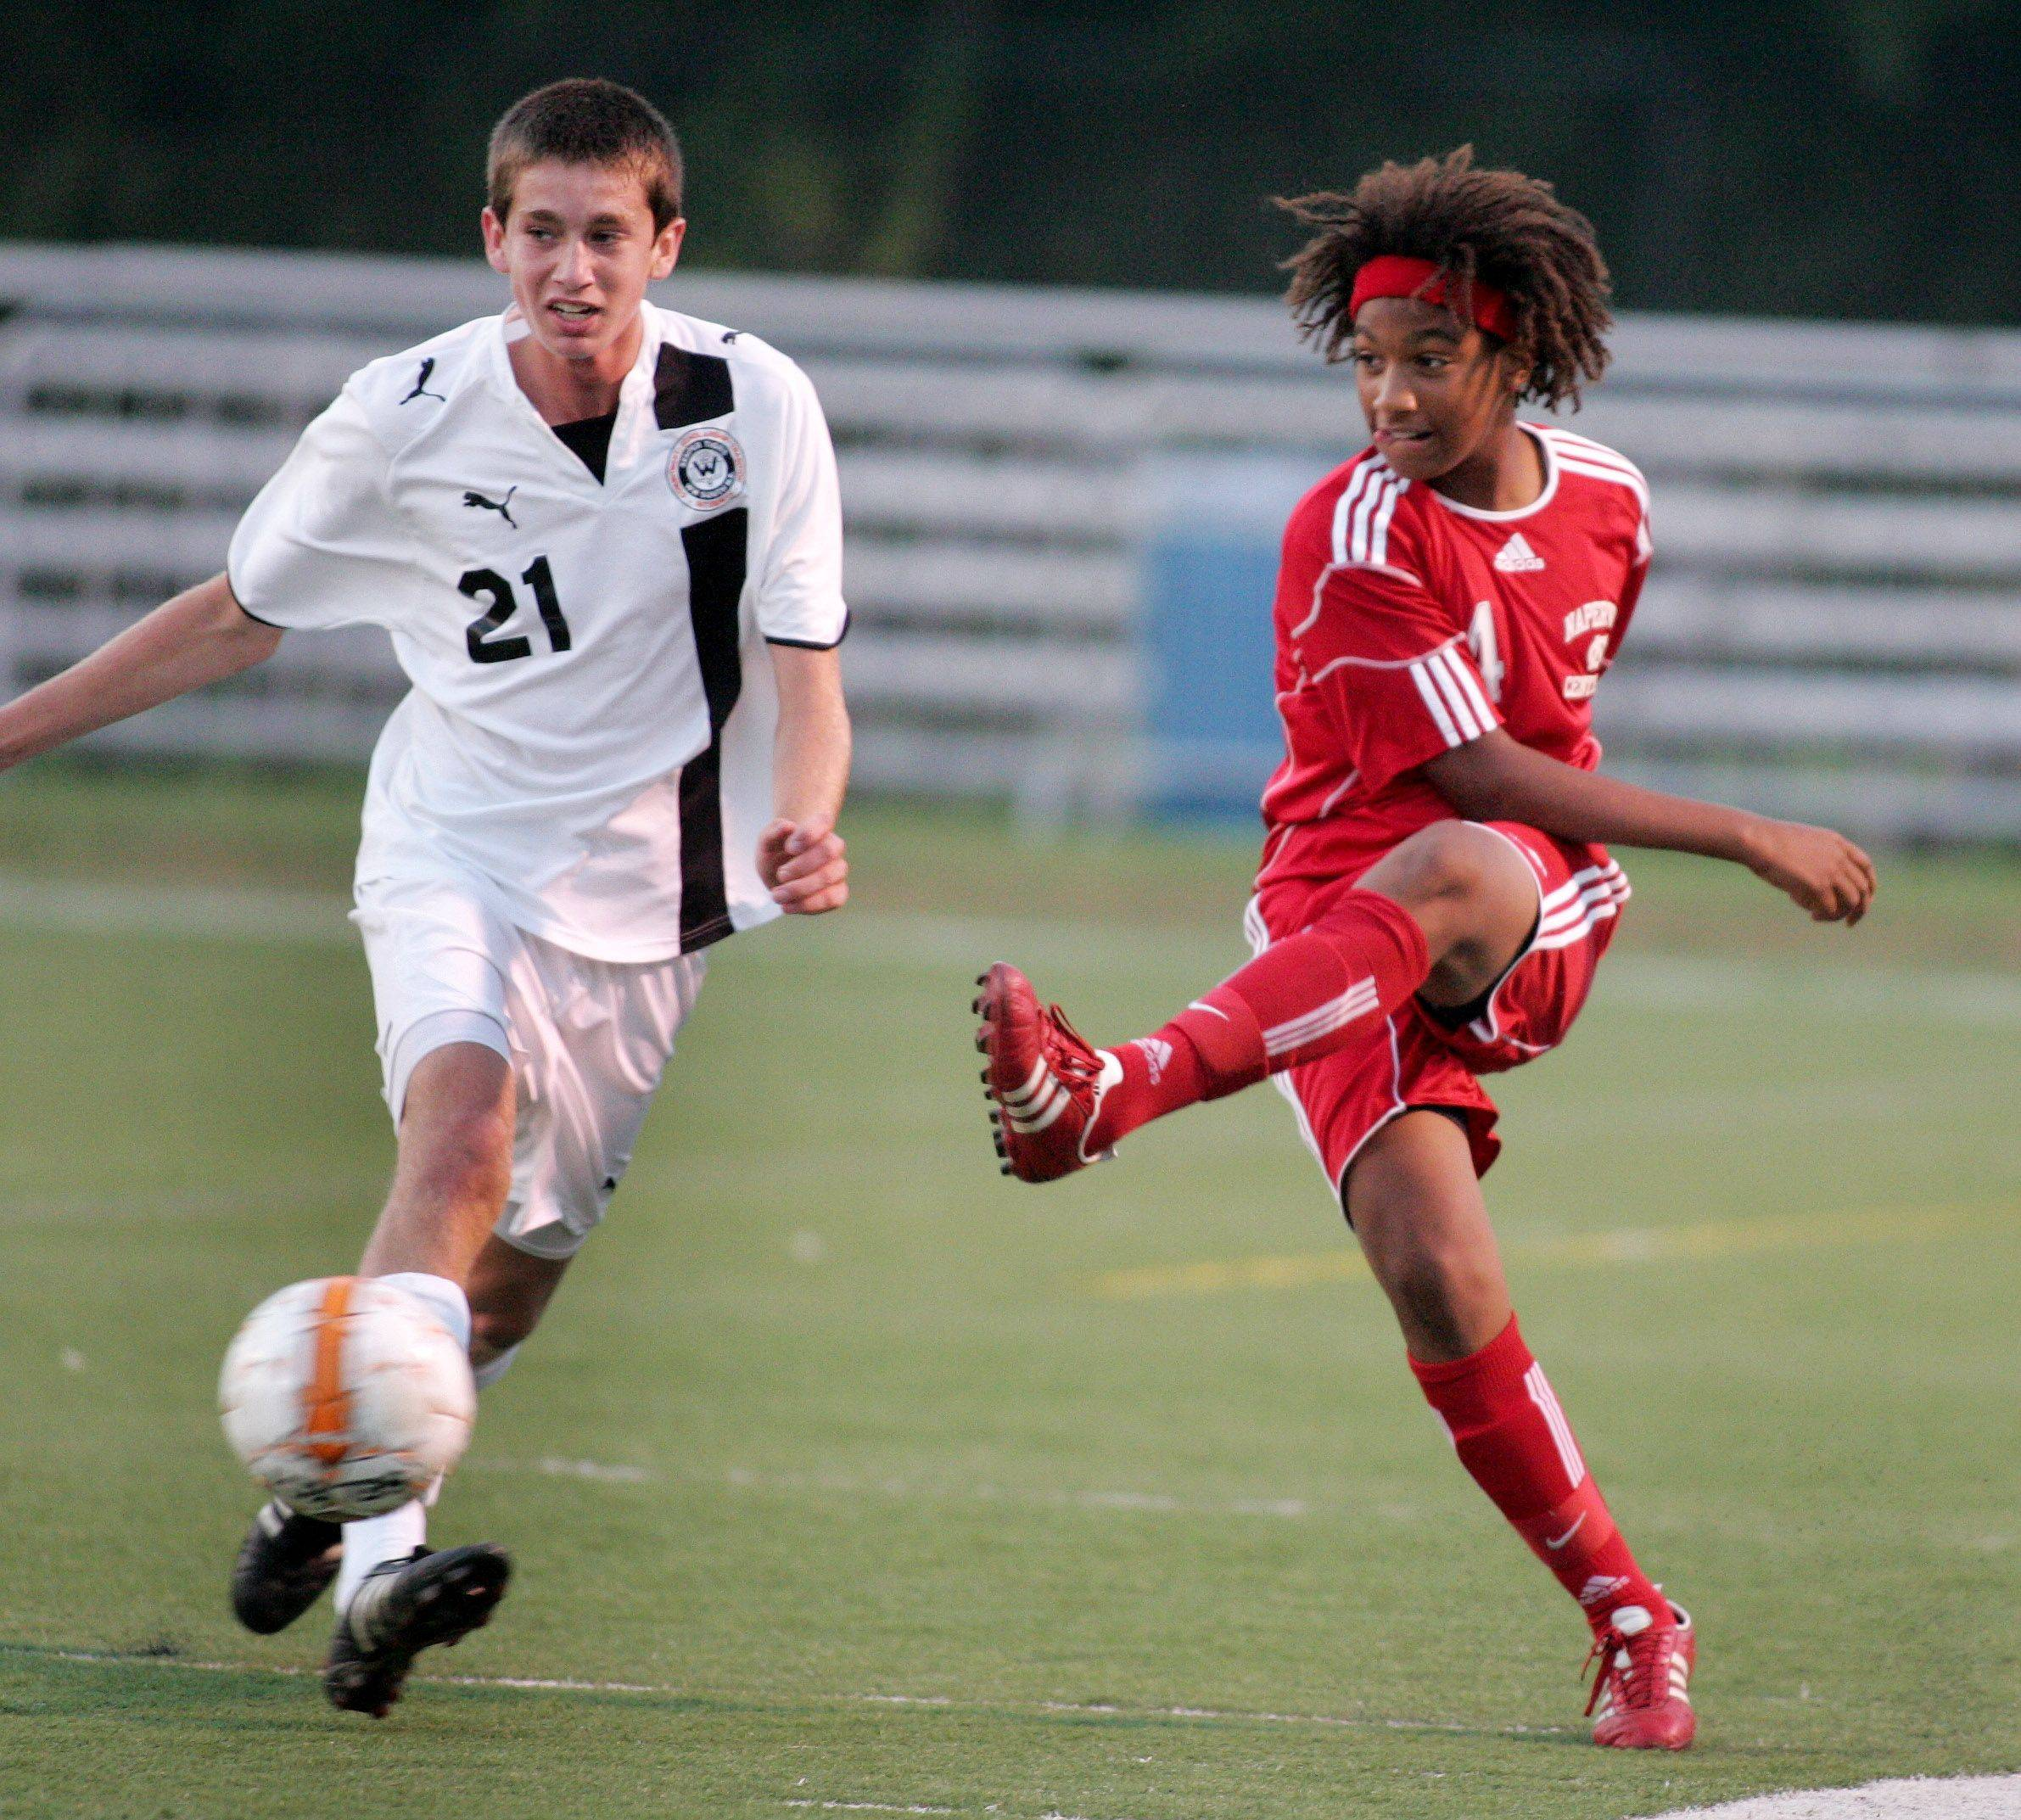 Bev Horne/bhorne@dailyherald.com Jay Tegge, right, of Naperville Central, kicks the ball away from Max Carey, left, of Wheaton Warrenville South during boys soccer action Tuesday in Wheaton.